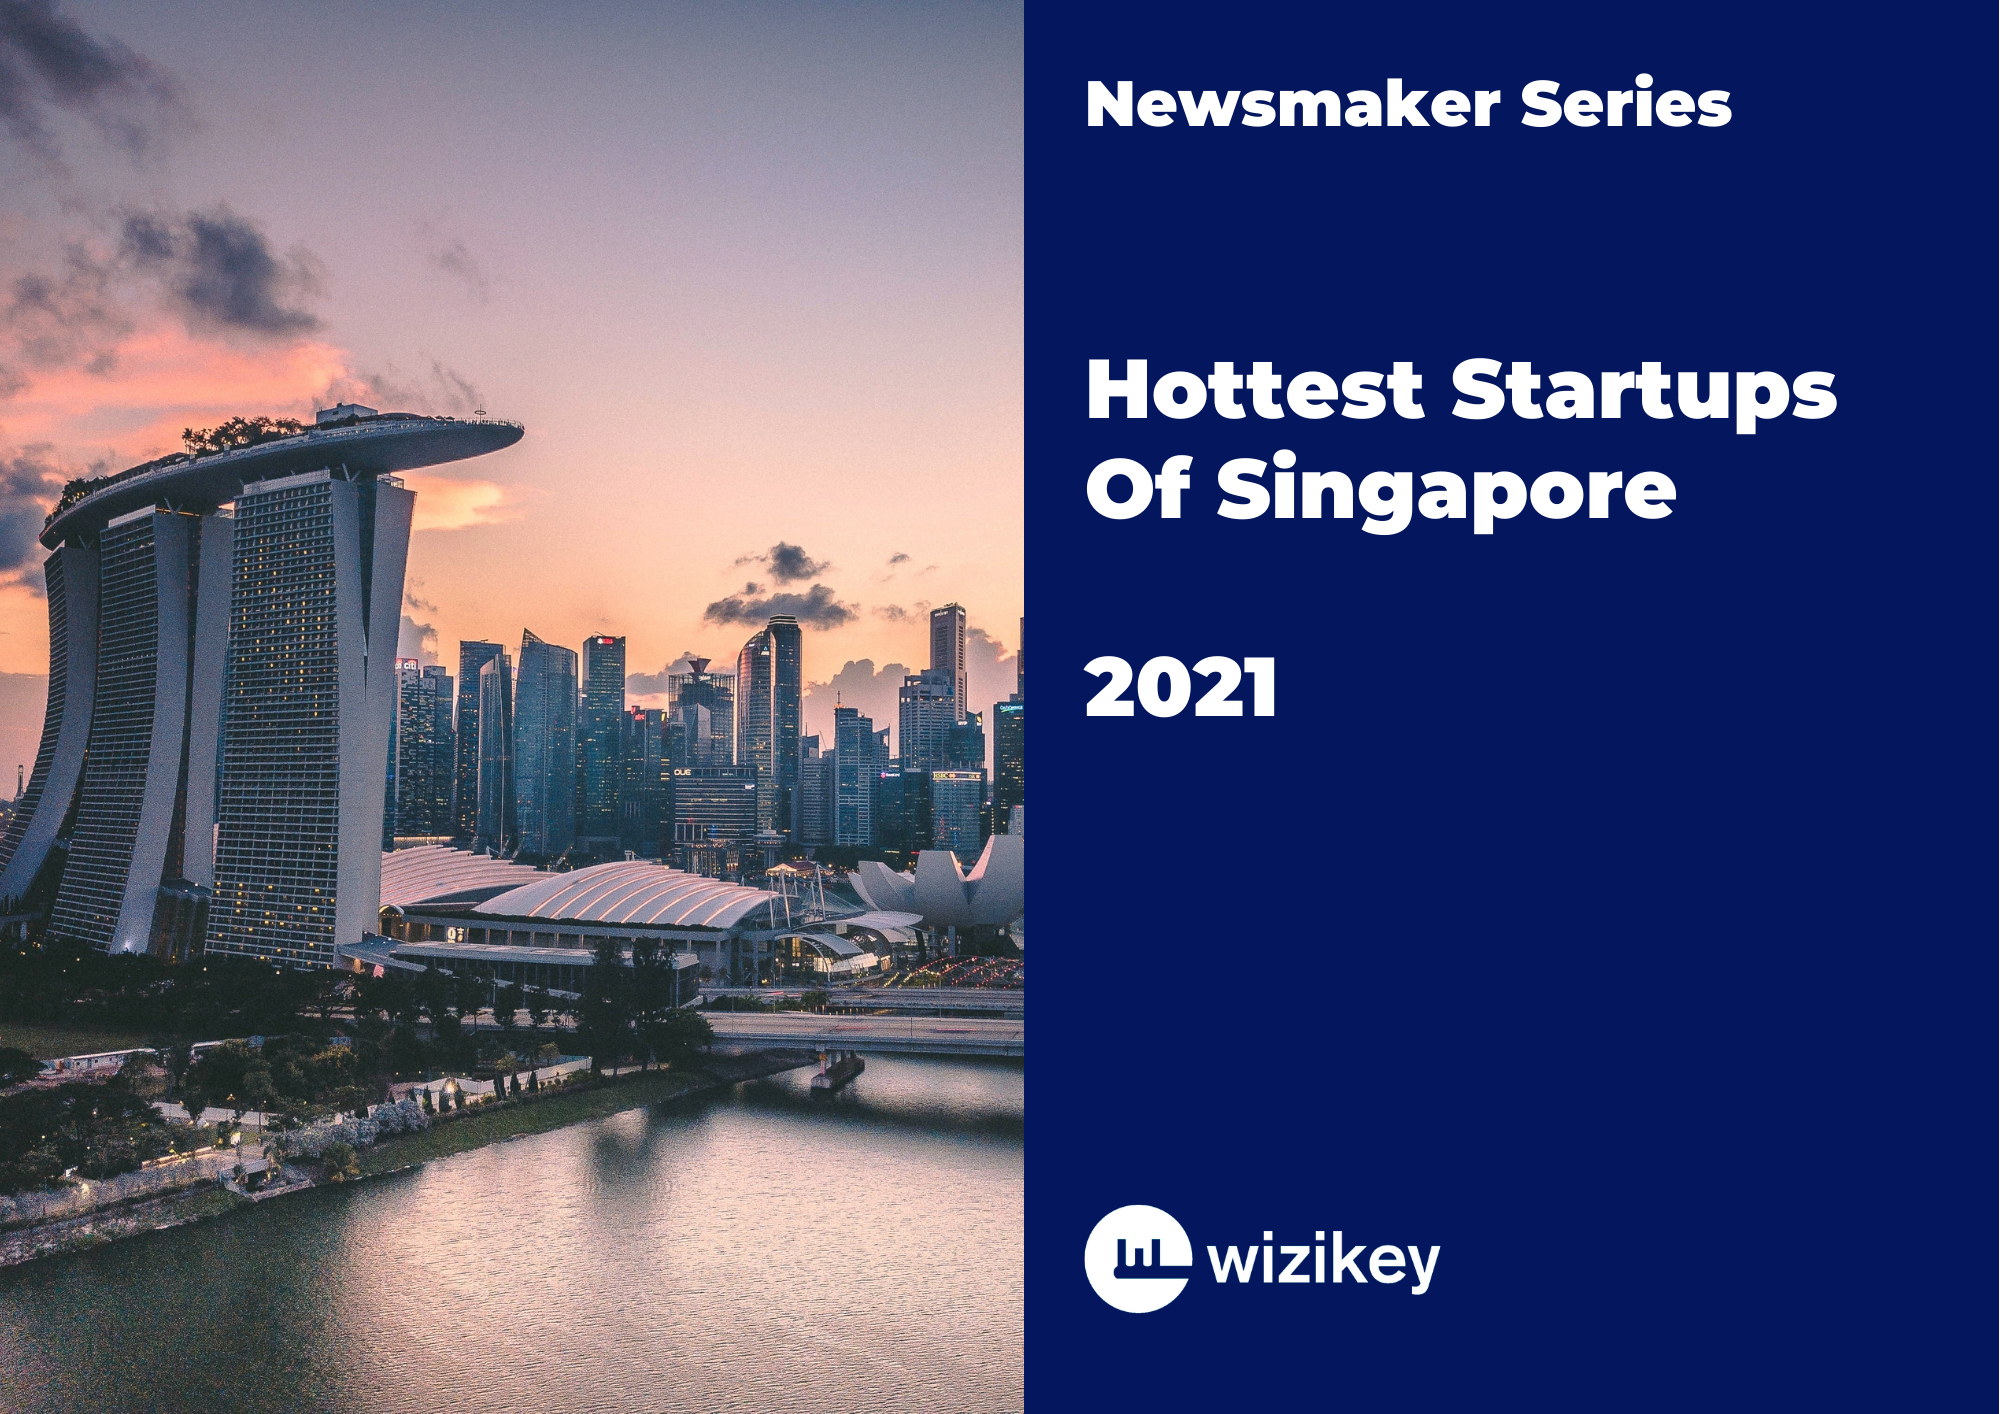 Hottest Startups of Singapore 2021